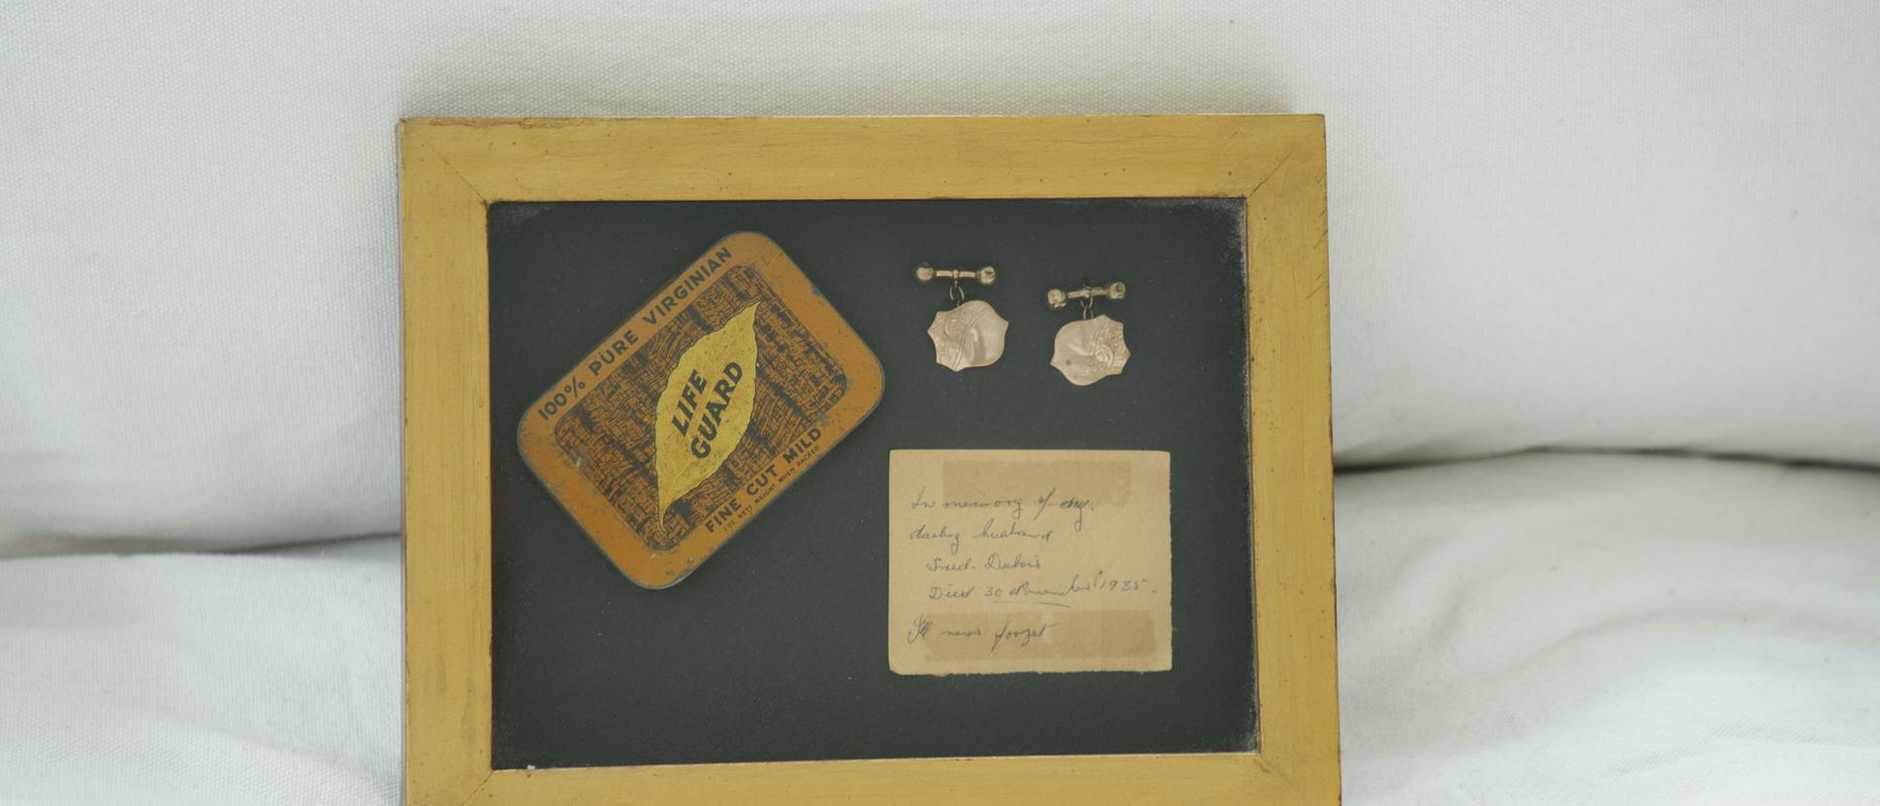 Grandfather's tobacco pouch, letter and cufflinks.